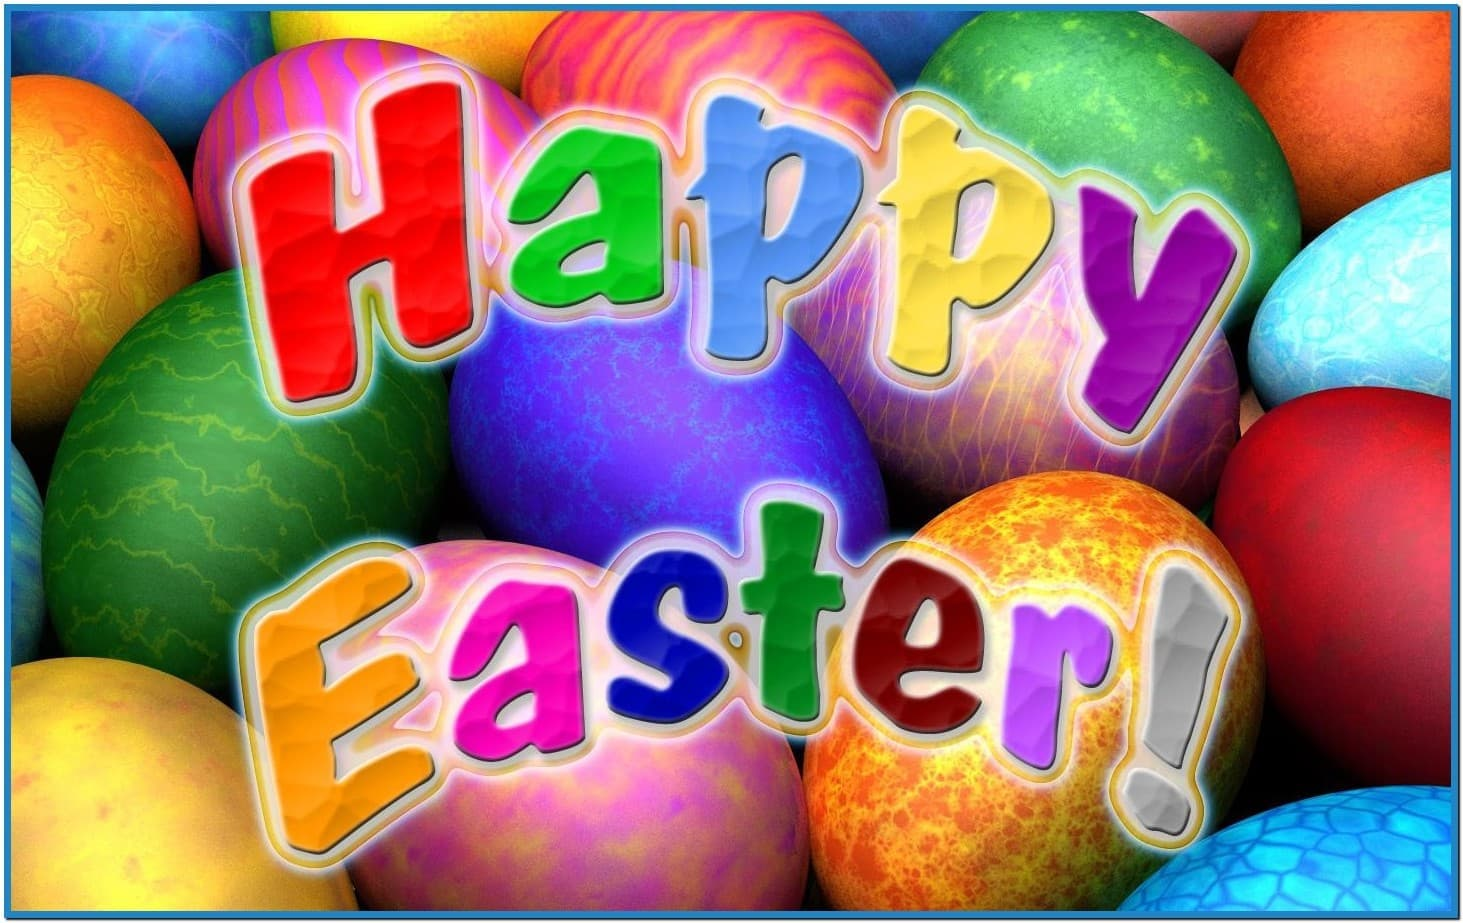 Free Download Happy Easter Screensaver Download 1463x923 For Your Desktop Mobile Tablet Explore 49 Animated Wallpapers For Kindle Cat Free Wallpaper For Kindle Kindle Fire Hd Wallpaper Kindle Fire